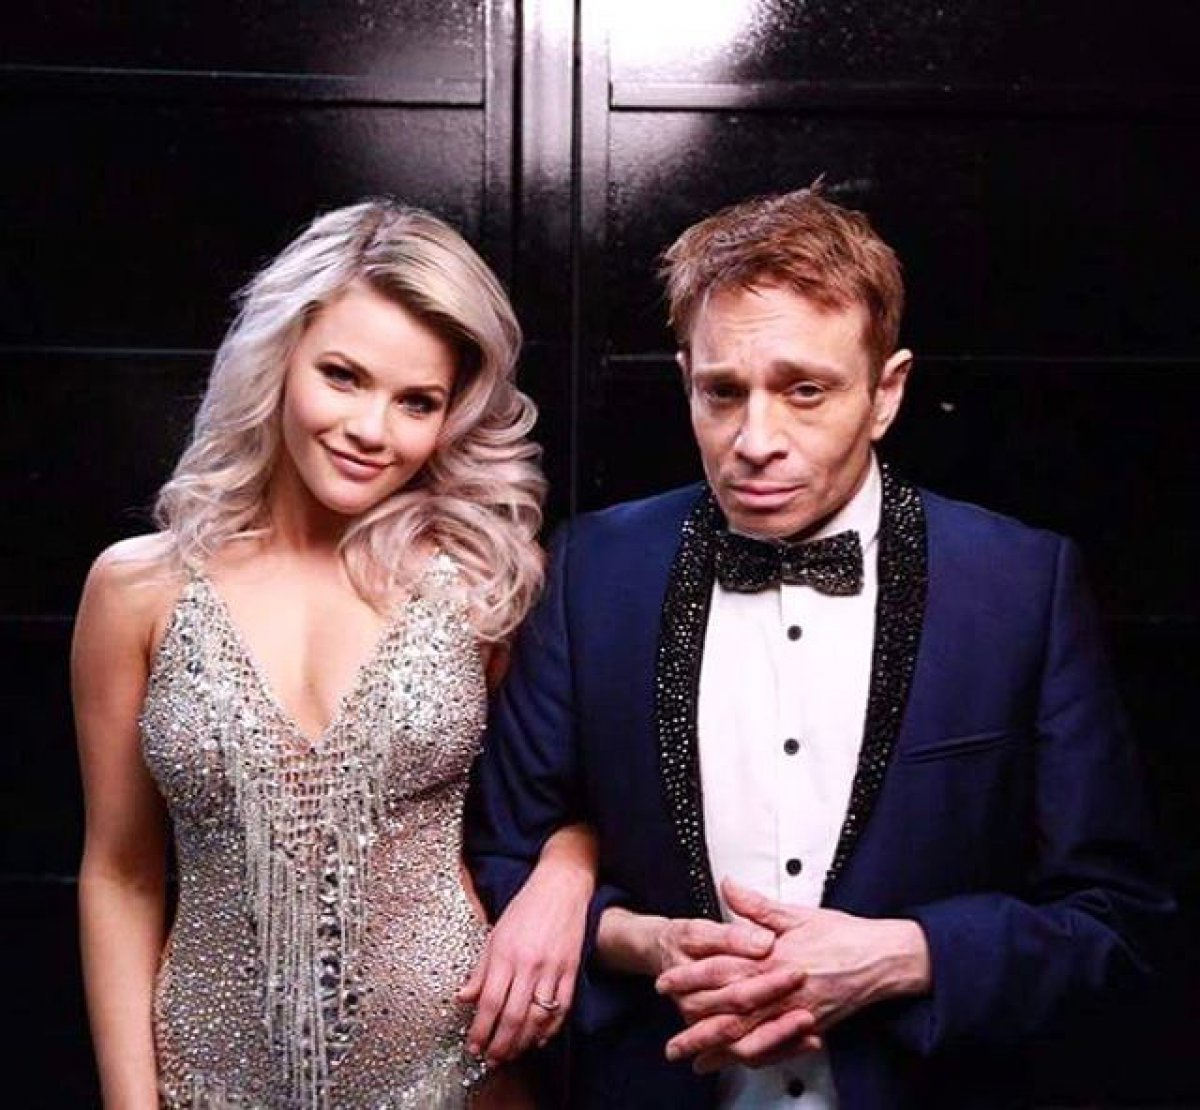 Story Dancing With The Stars Kym Johnson And Robert Herjavec Welcome Twins: 'Dancing With The Stars' Recap: Chris Kattan And Pro